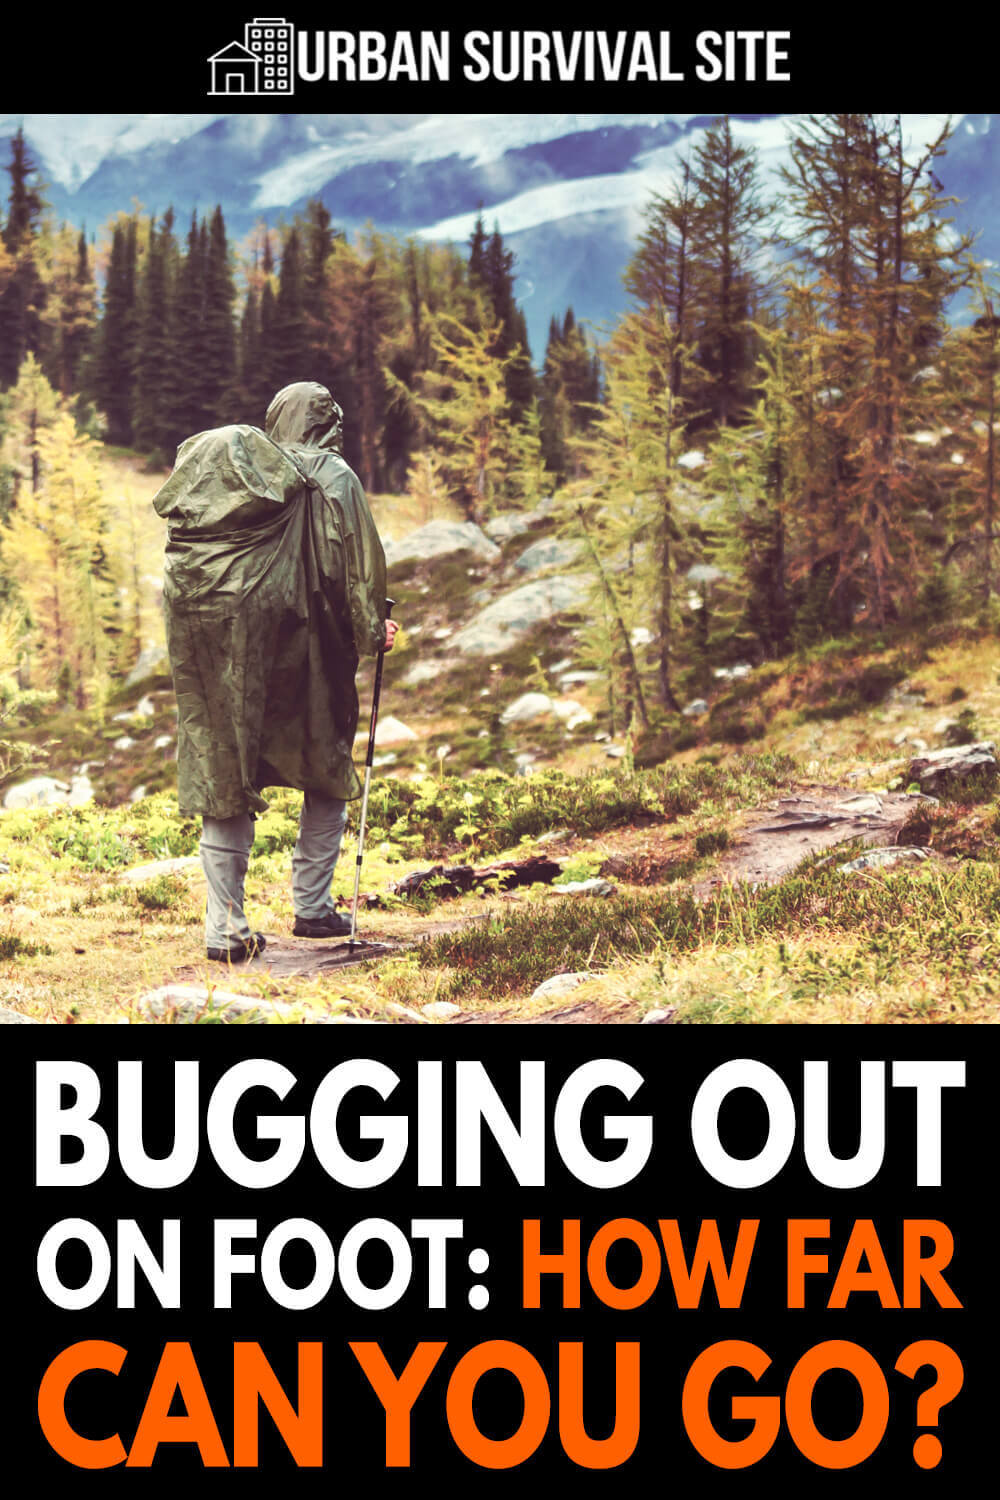 Bugging Out On Foot: How Far Can You Go?